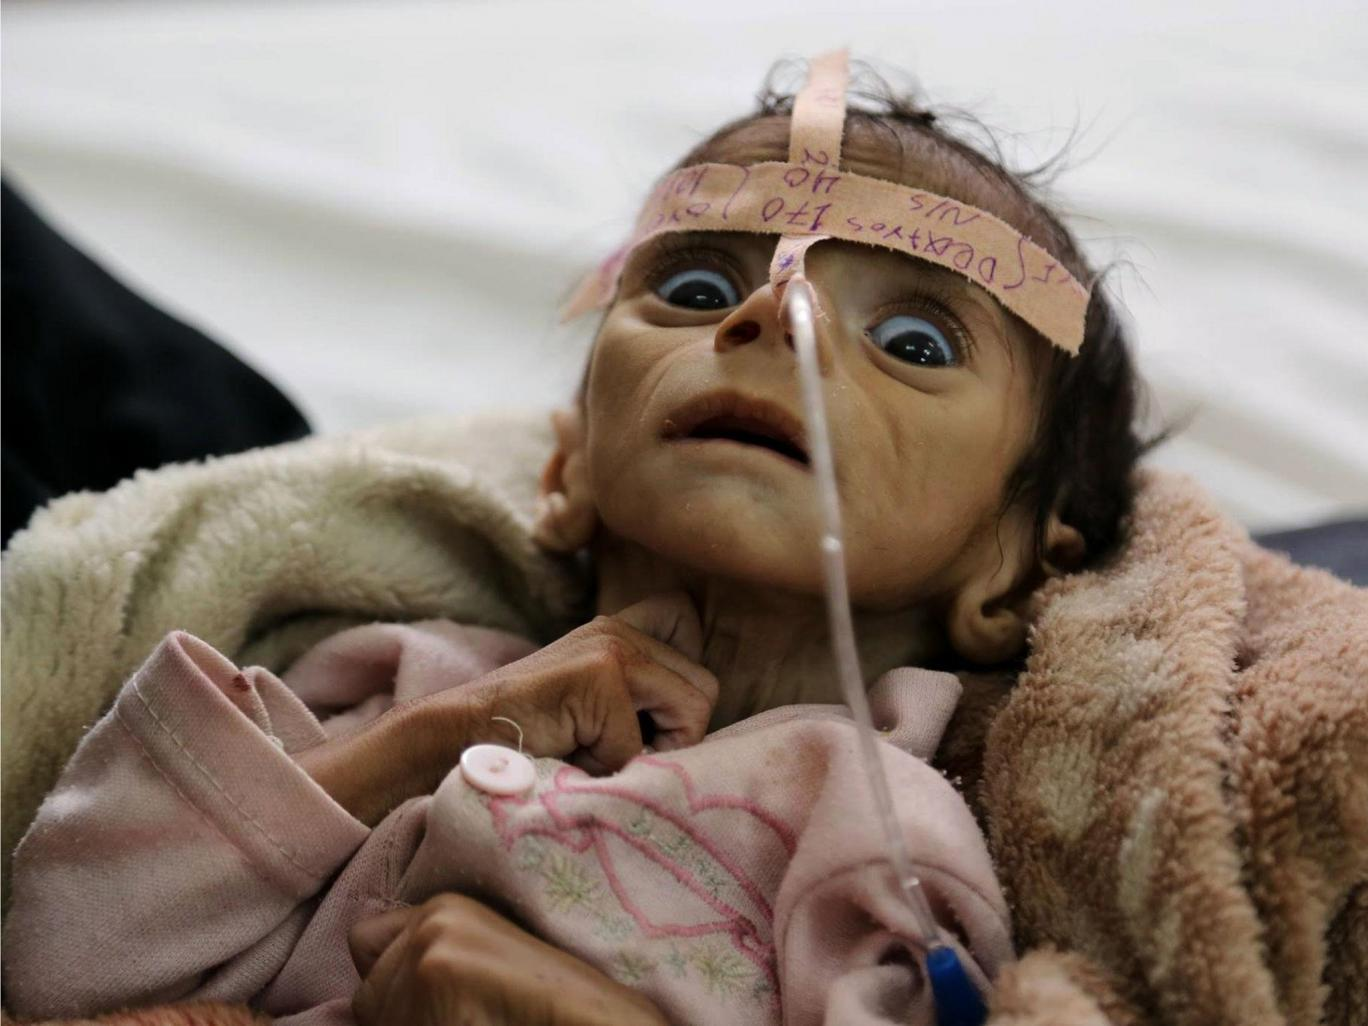 Udai Faisal, an infant suffering from acute malnutrition, at Al-Sabeen Hospital in Sanaa, Yemen, on 22 March, 2016. Udai died on 24 March